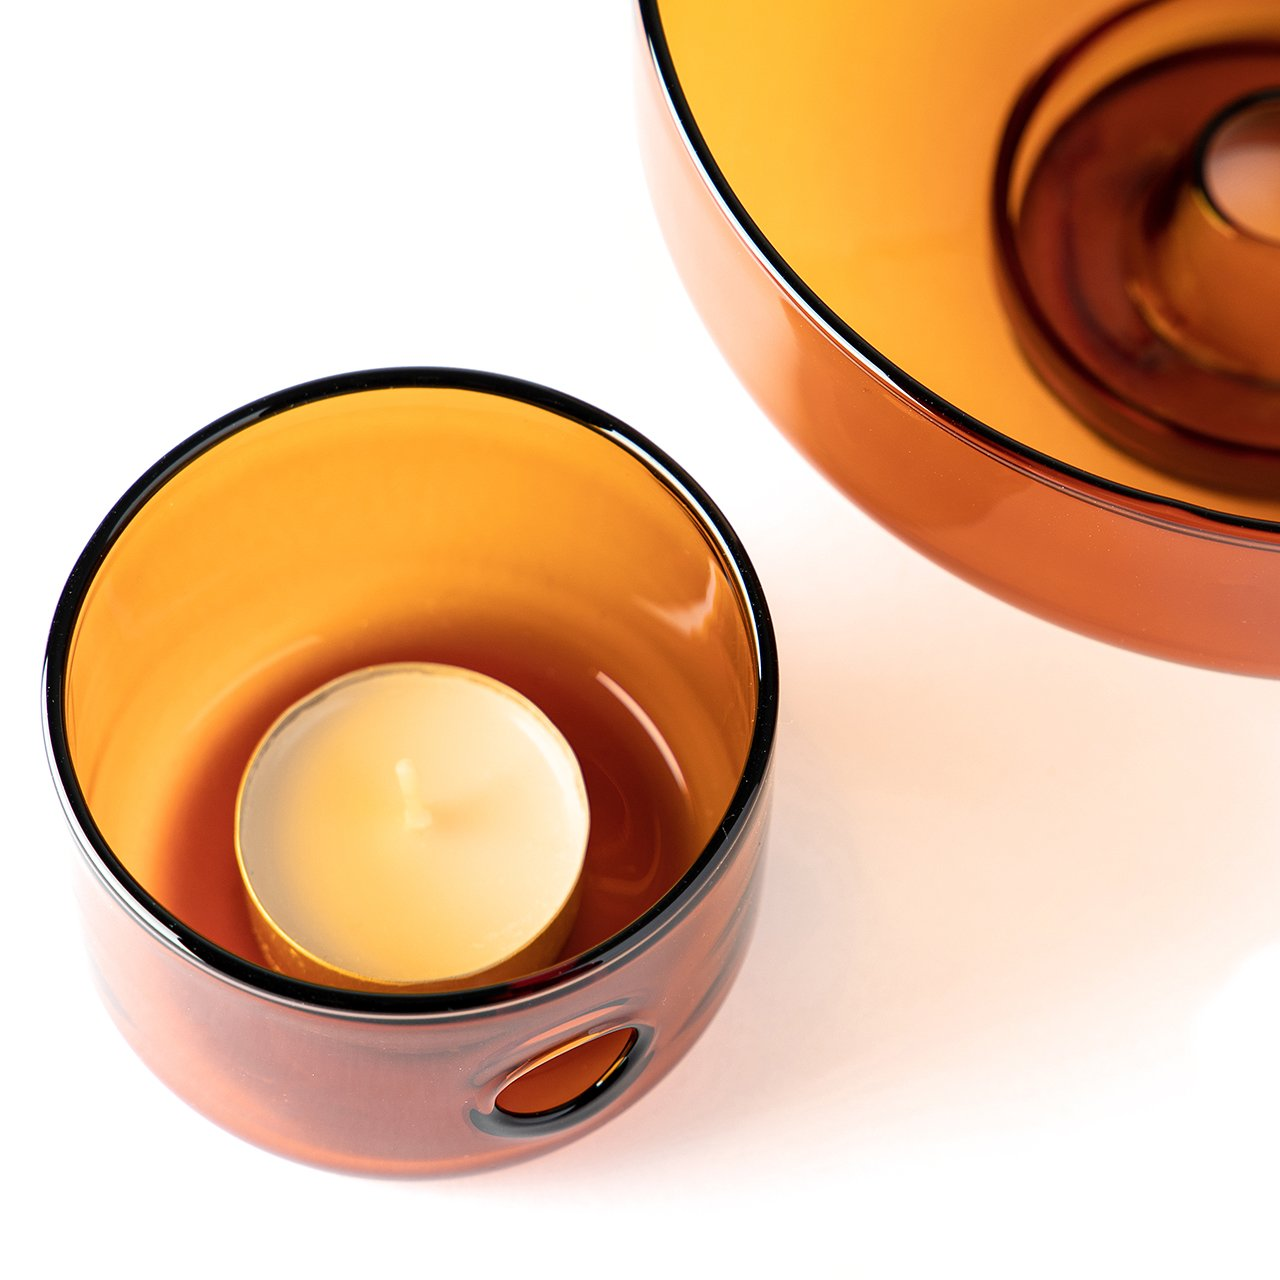 Oil + Water Amber Oil Burner